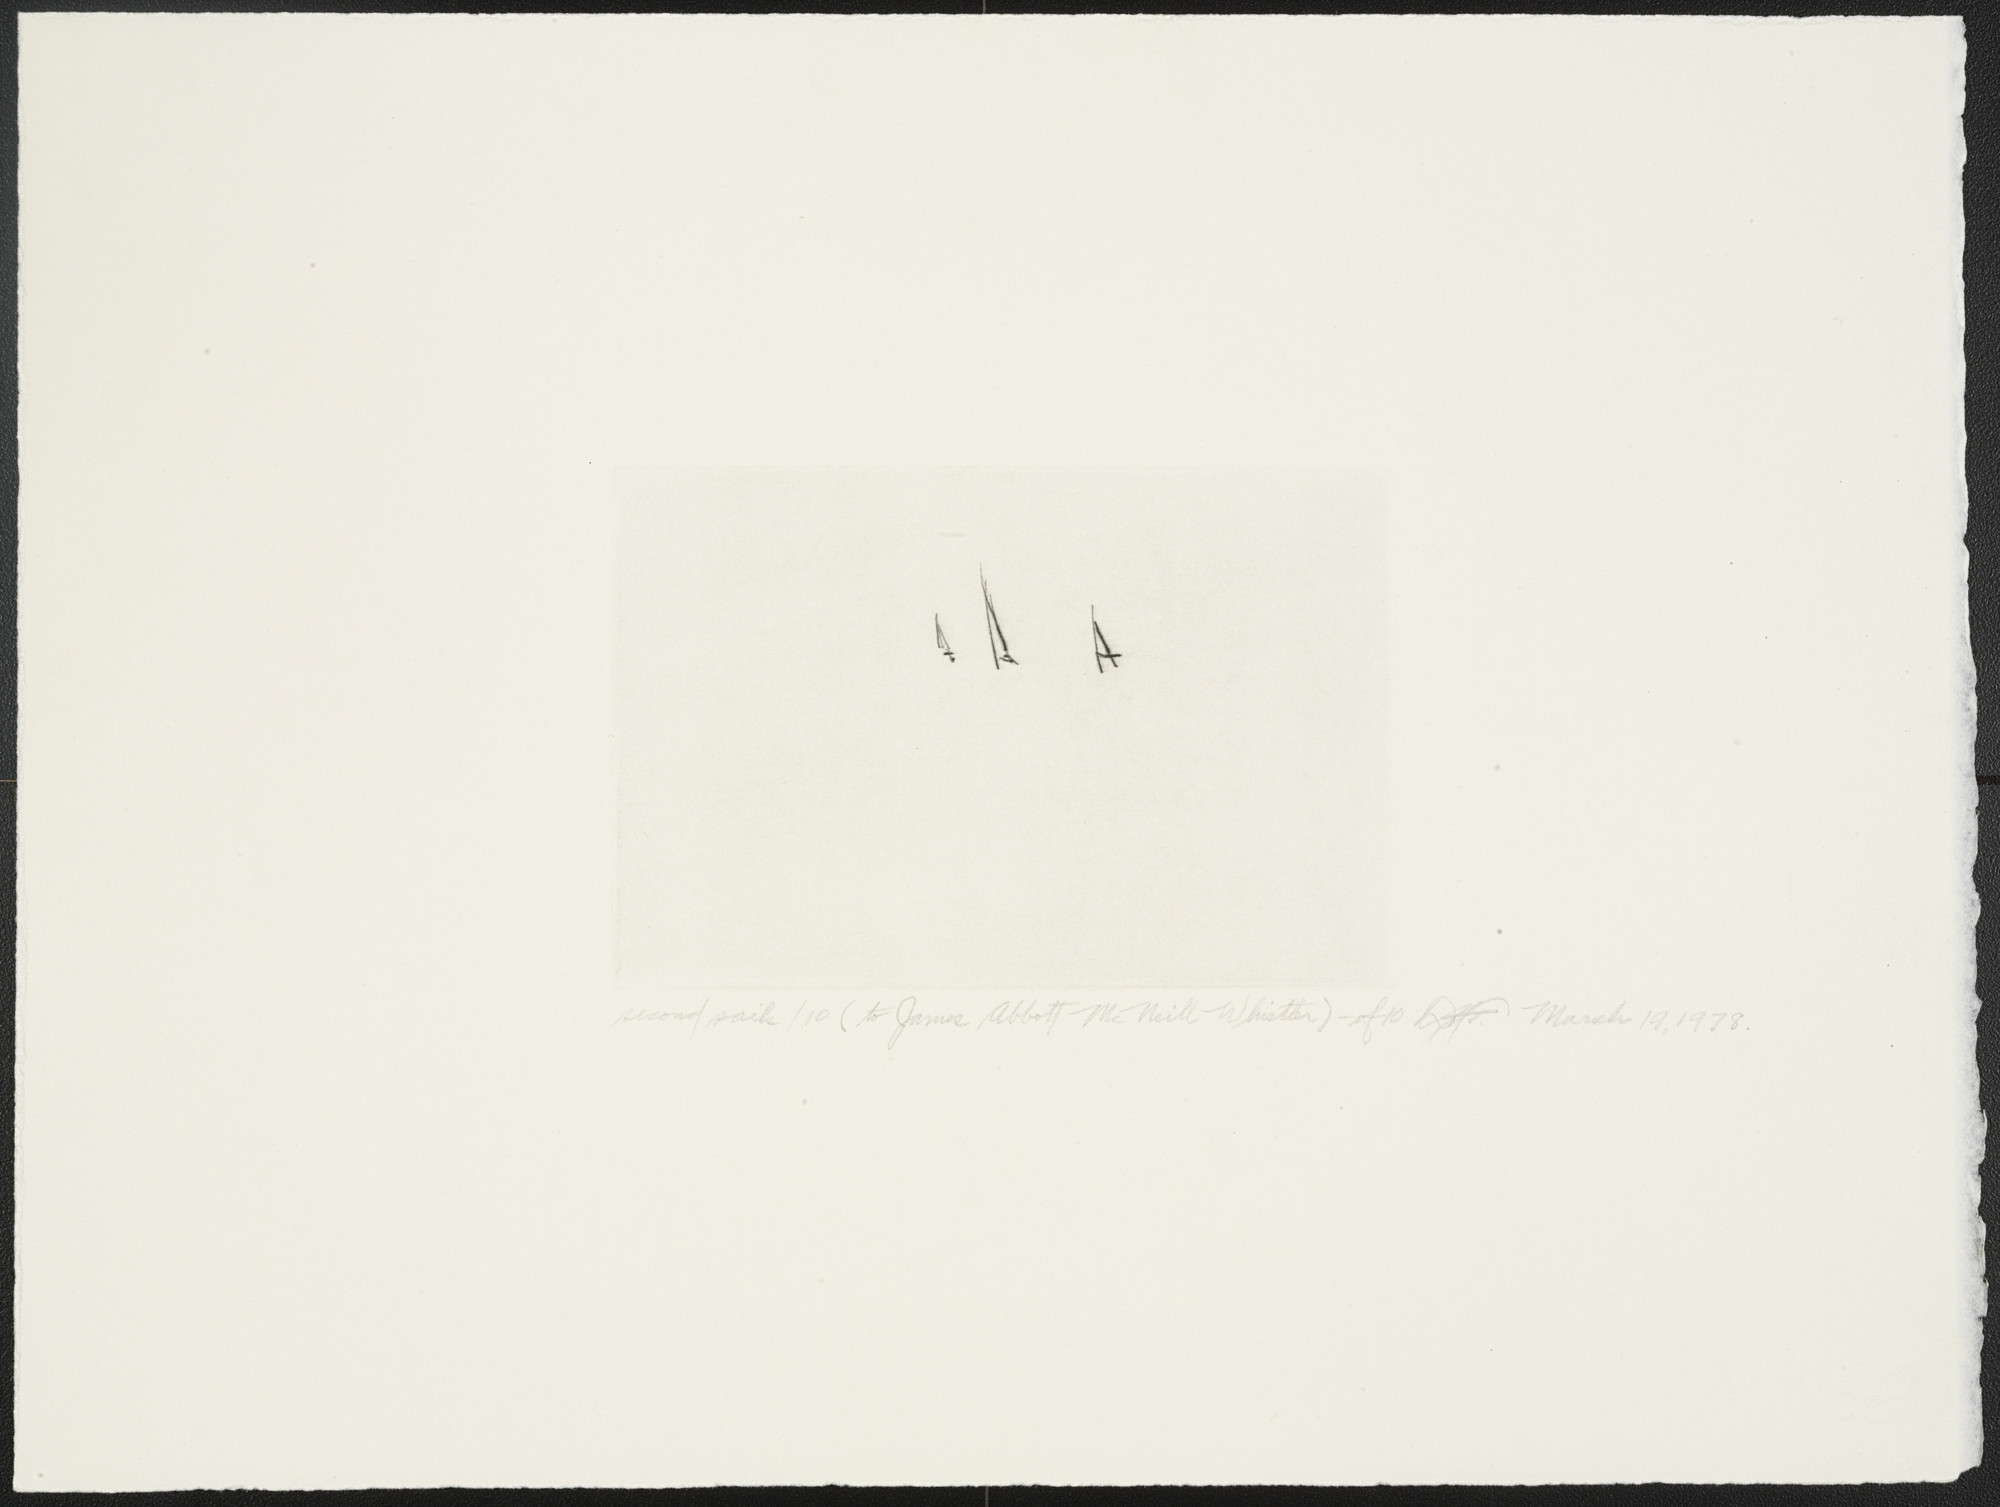 Dan Flavin. Second Sails 10 from Second Sails (To James Abbott McNeill Whistler). 1978